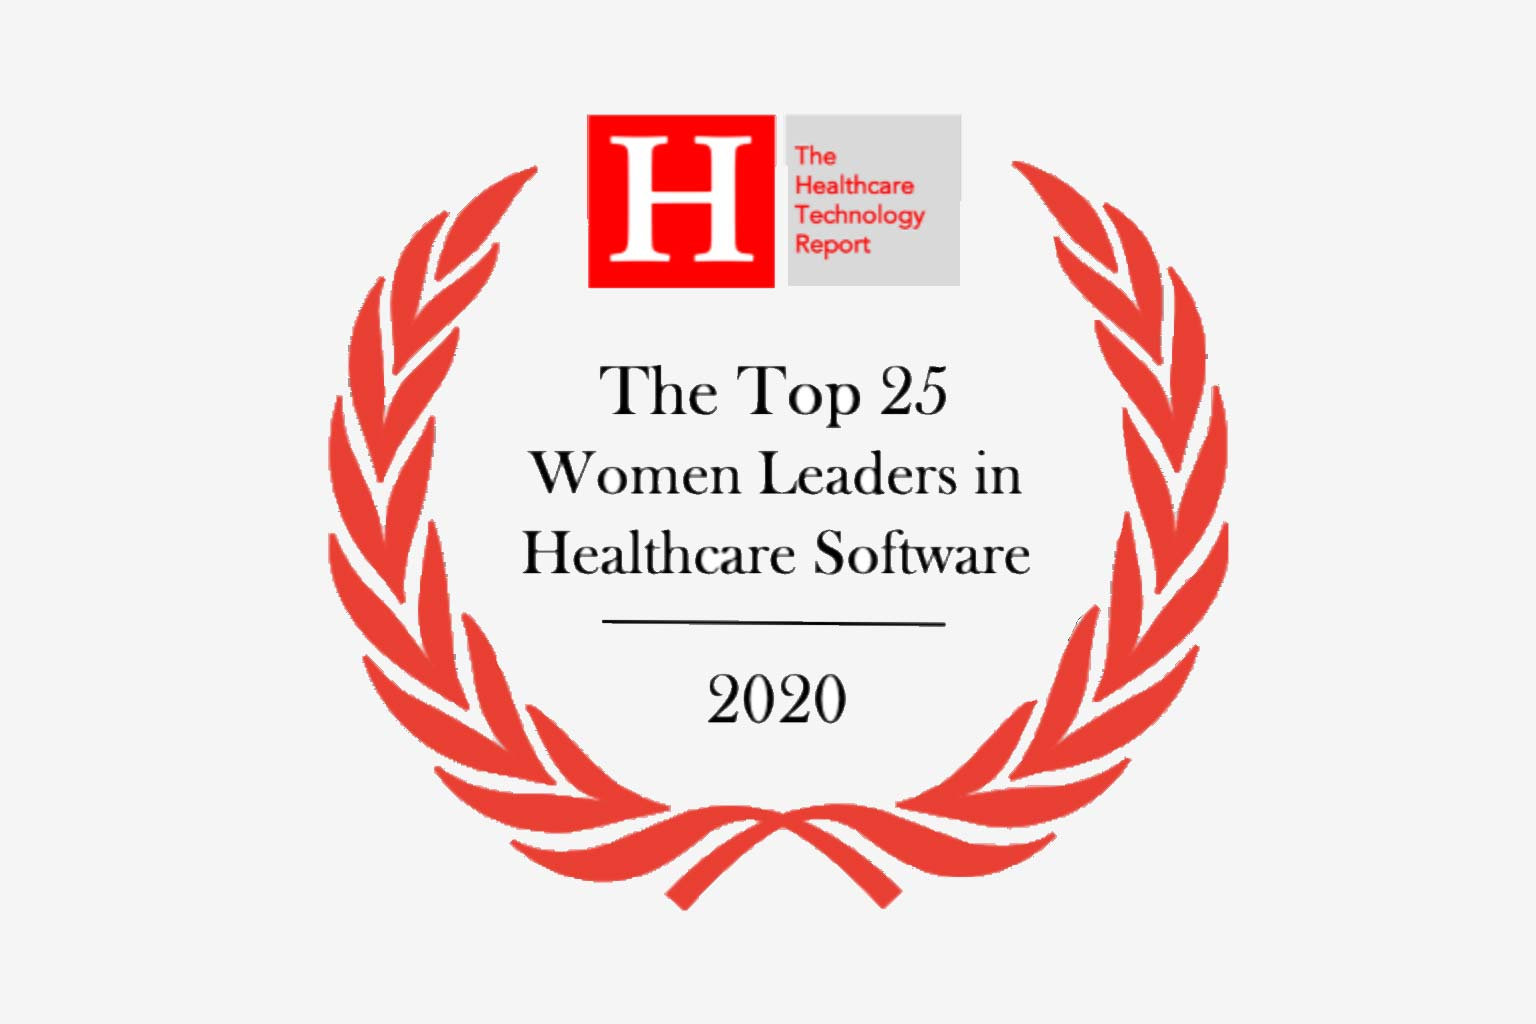 The Healthcare Technology Report names Dr. Denise Basow of Wolters Kluwer to Top 25 Women Leaders in Healthcare Software